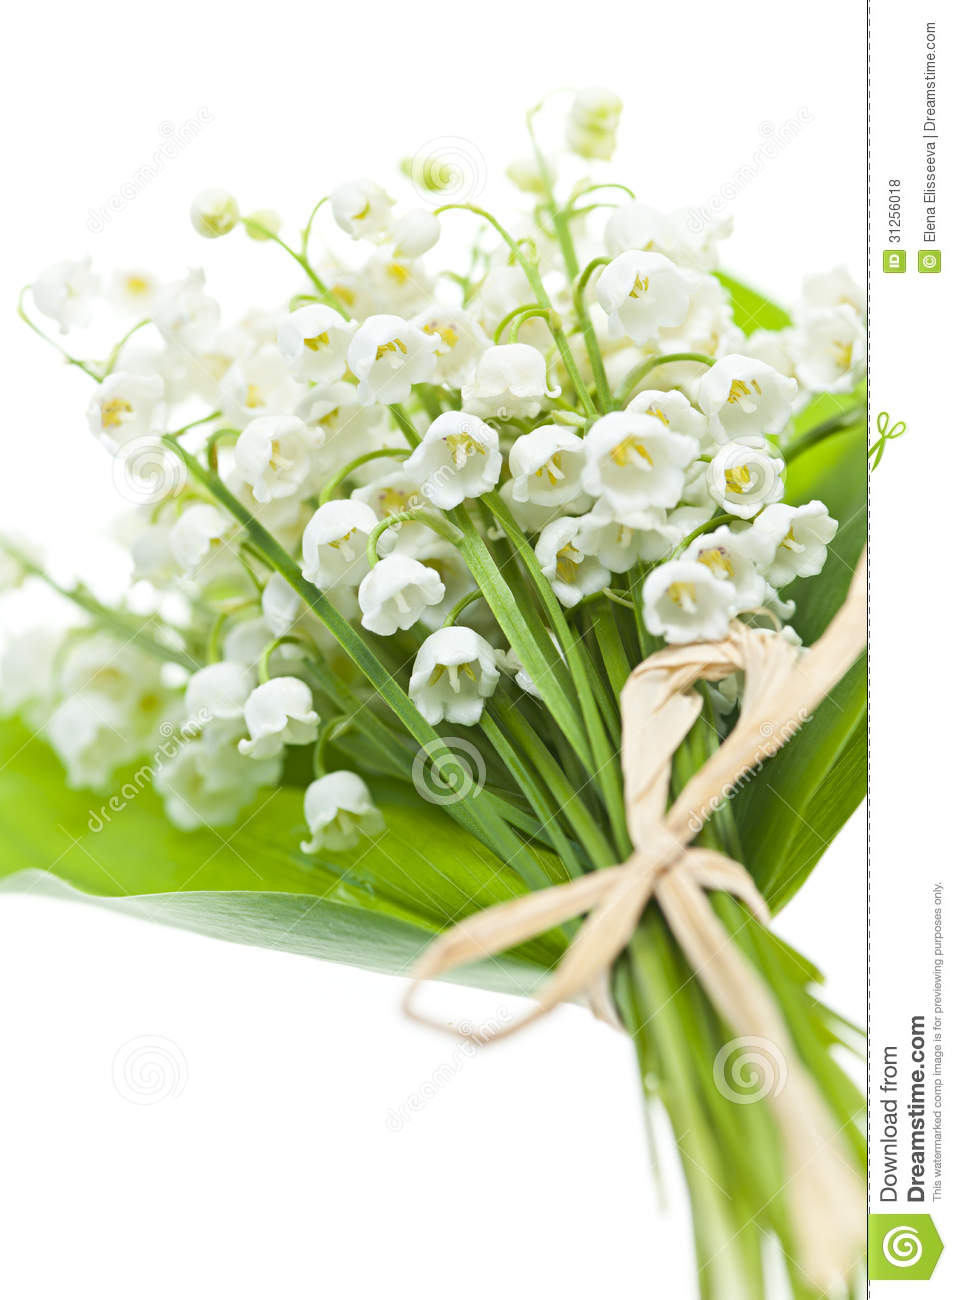 Lily of the valley flowers on white stock photo image of flowers royalty free stock photo izmirmasajfo